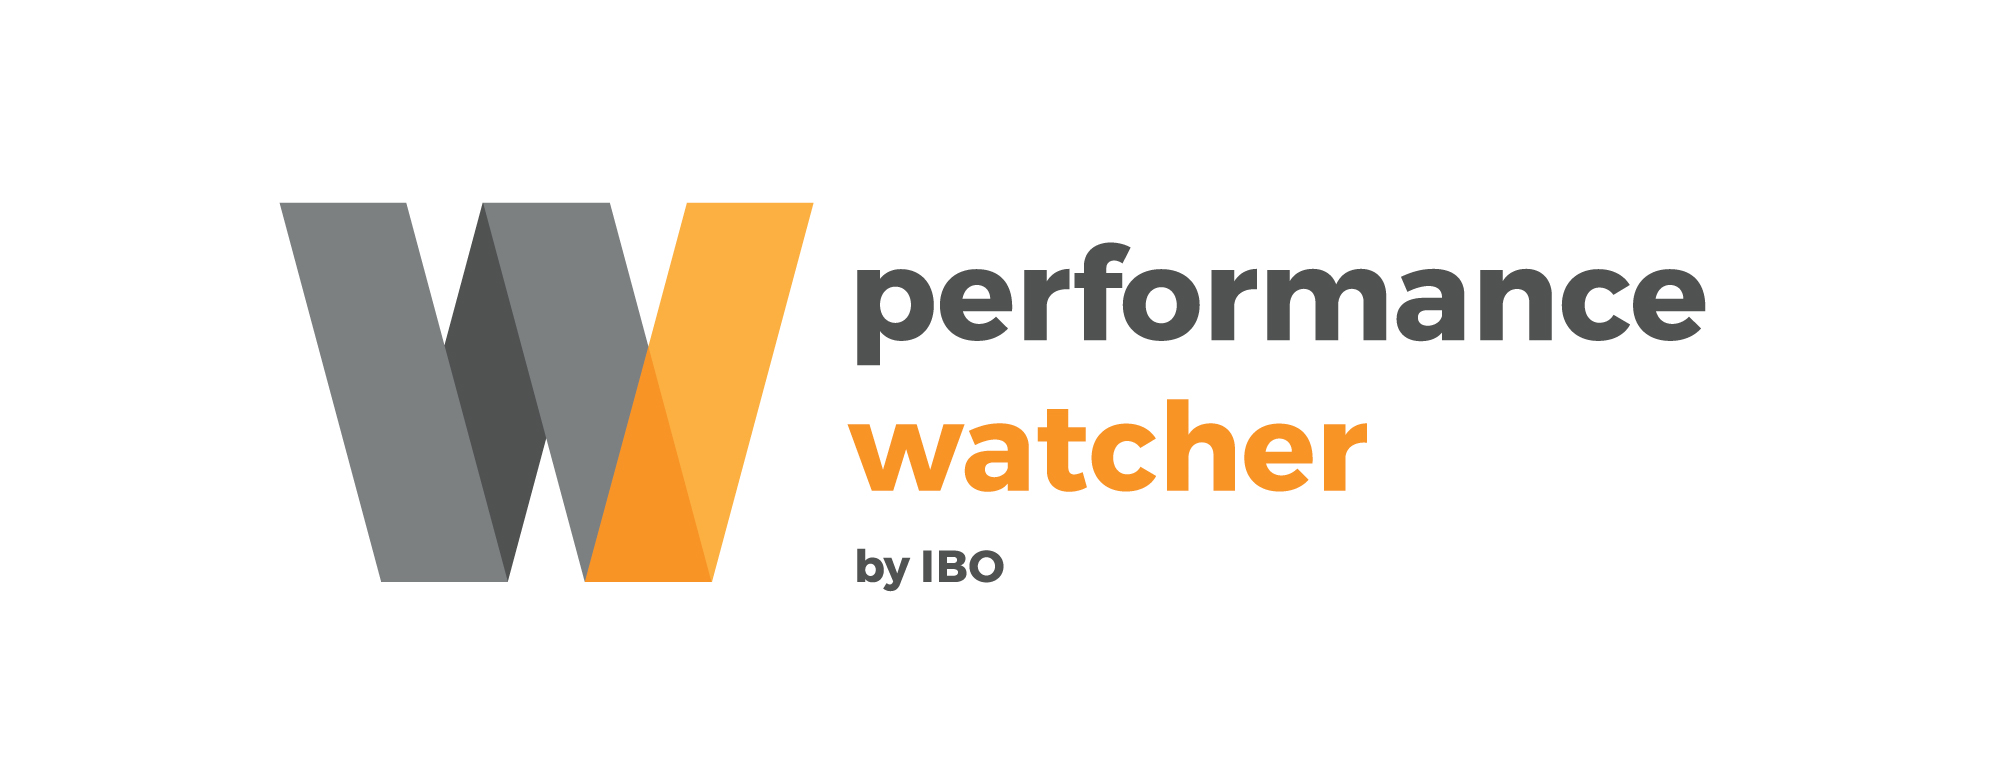 Performance Watcher by IBO Logo